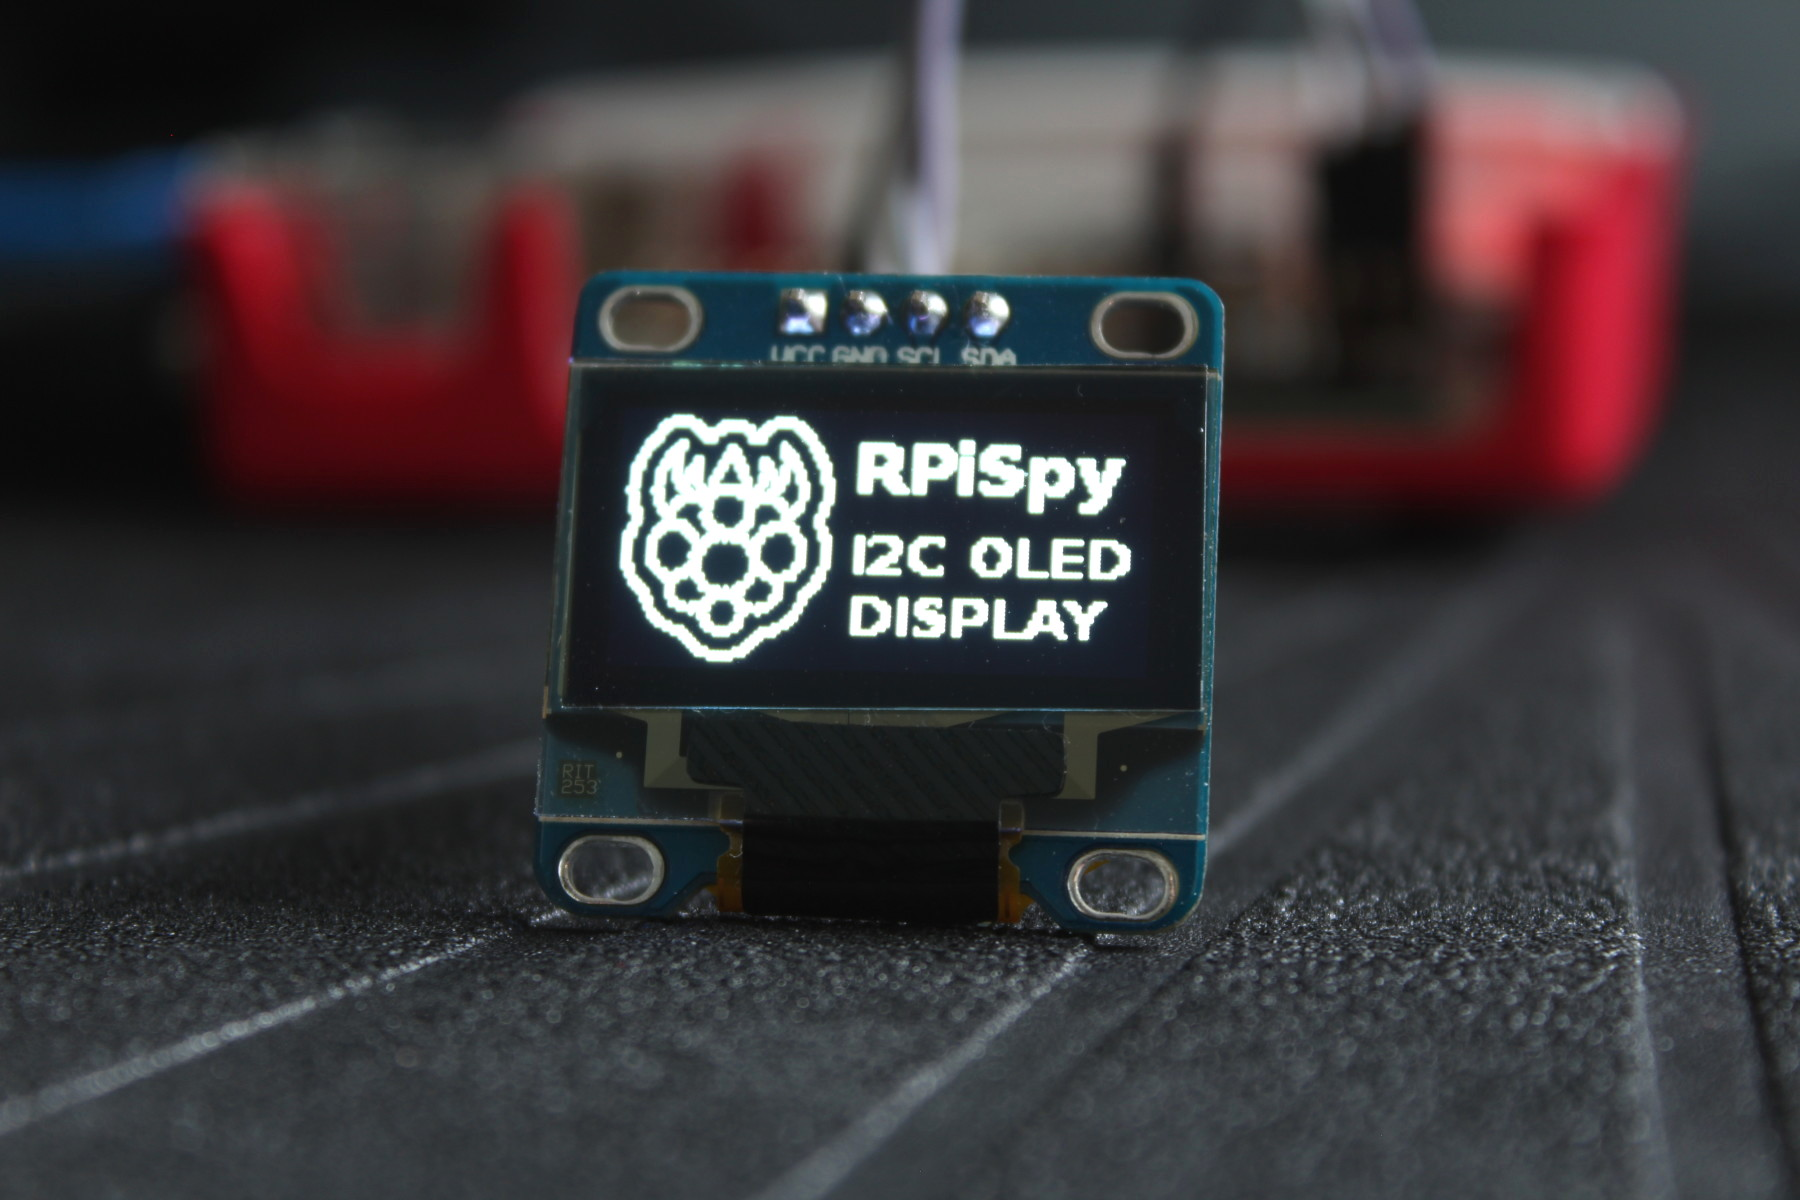 Using an I2C OLED Display Module with the Raspberry Pi